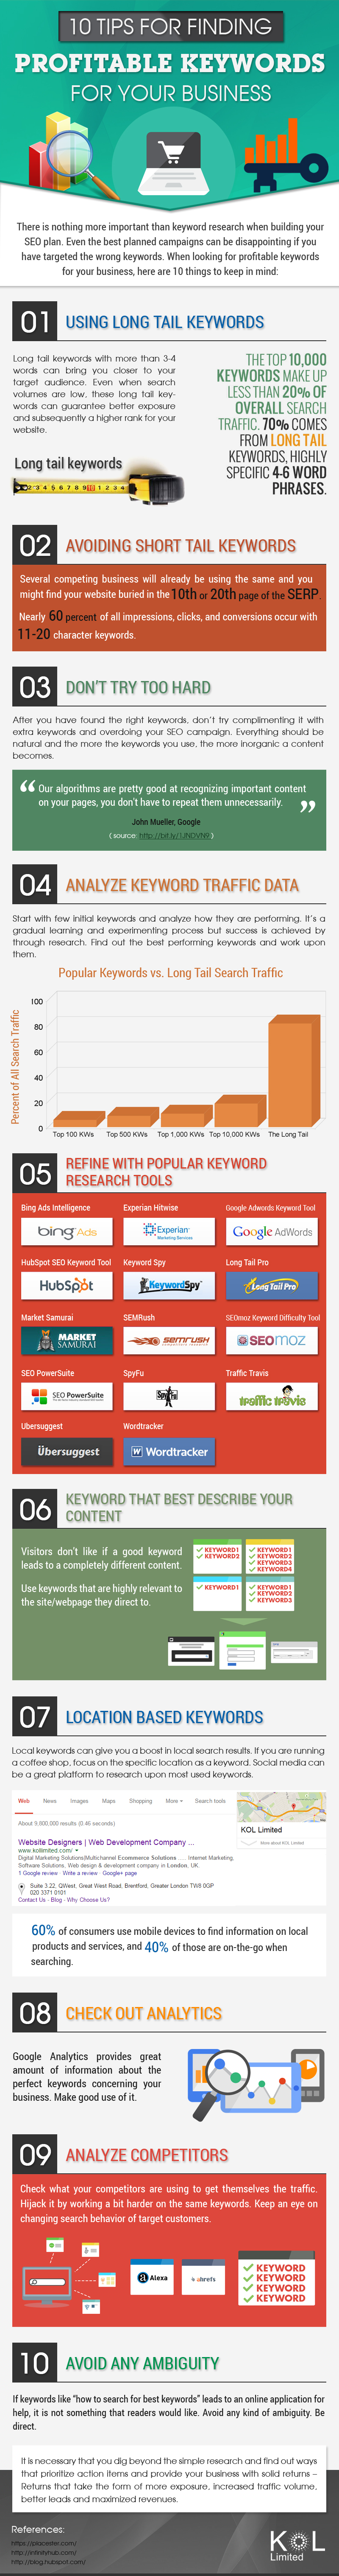 Tips to find profitable keywords